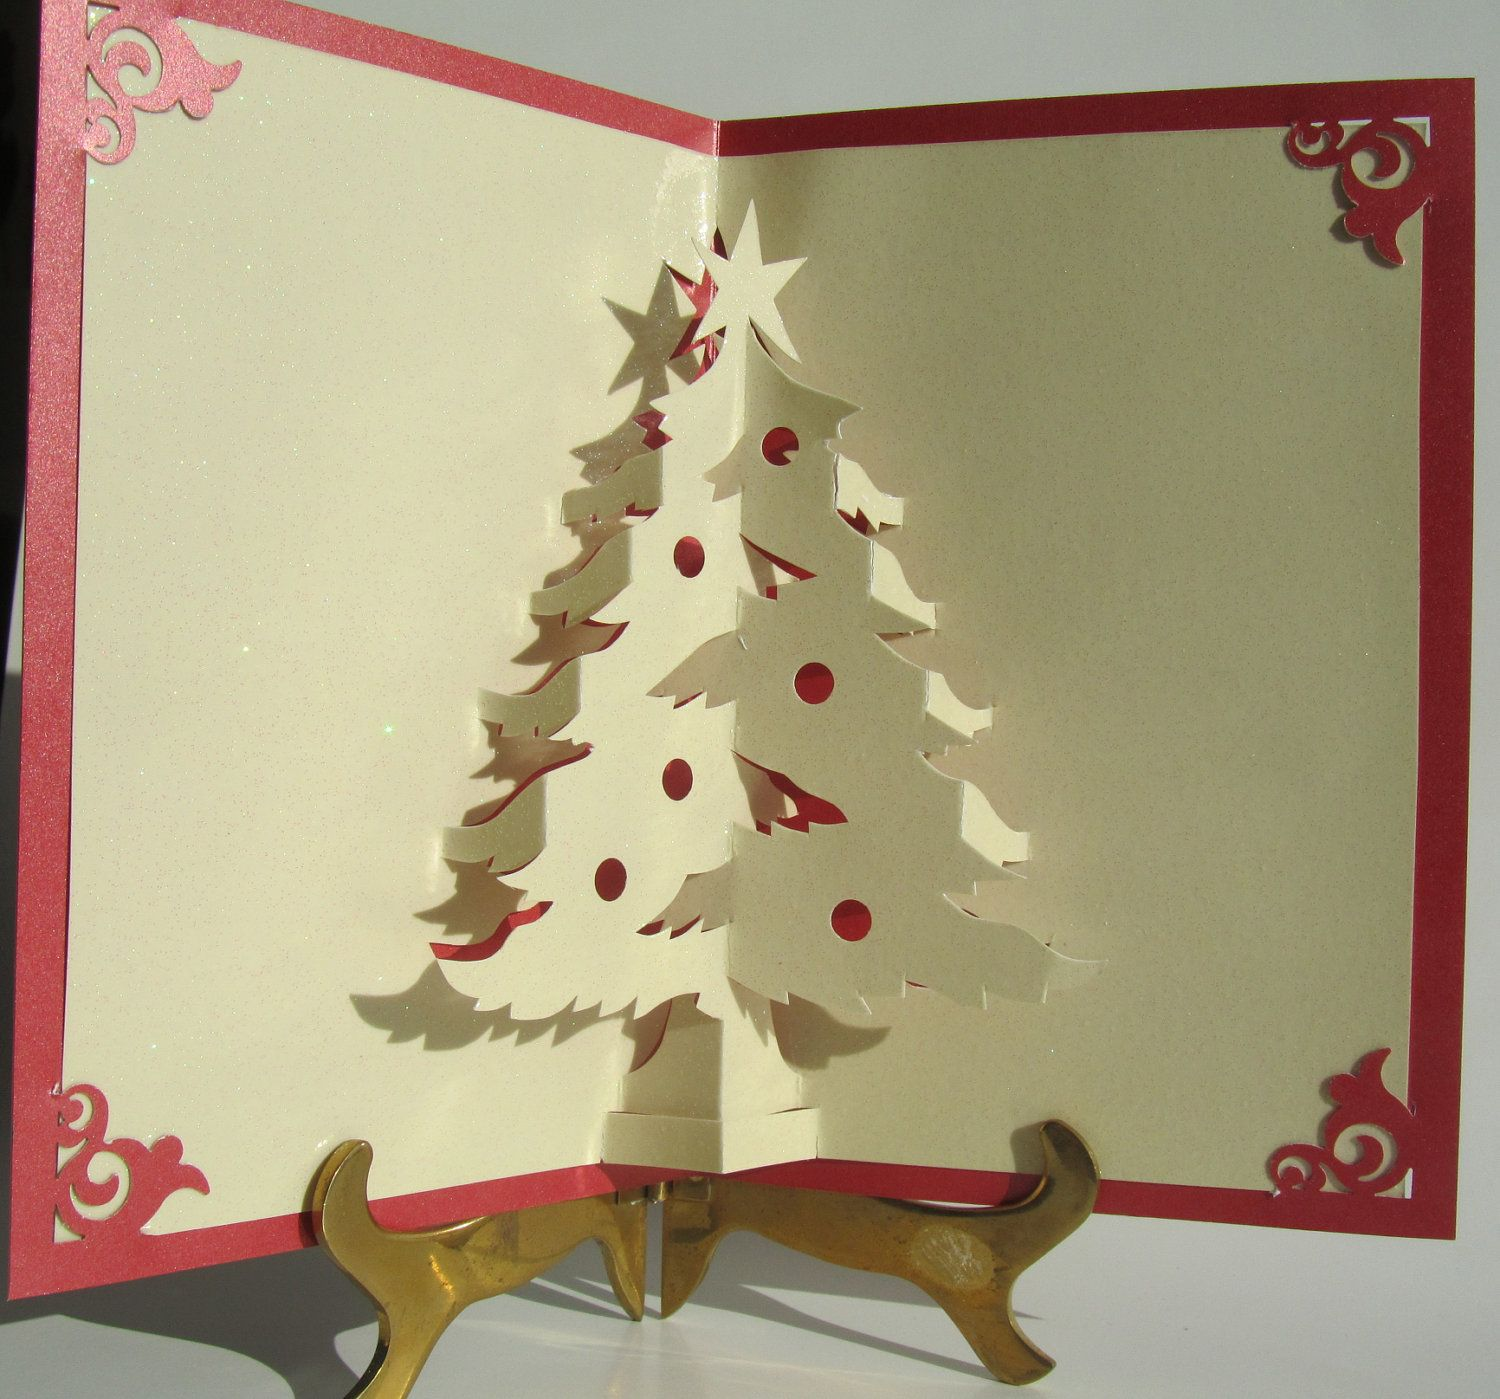 Christmas tree pop up up greeting card home dcor 3d handmade handmade pop up cards christmas tree pop up up greeting card home dcor 3d handmade kristyandbryce Image collections